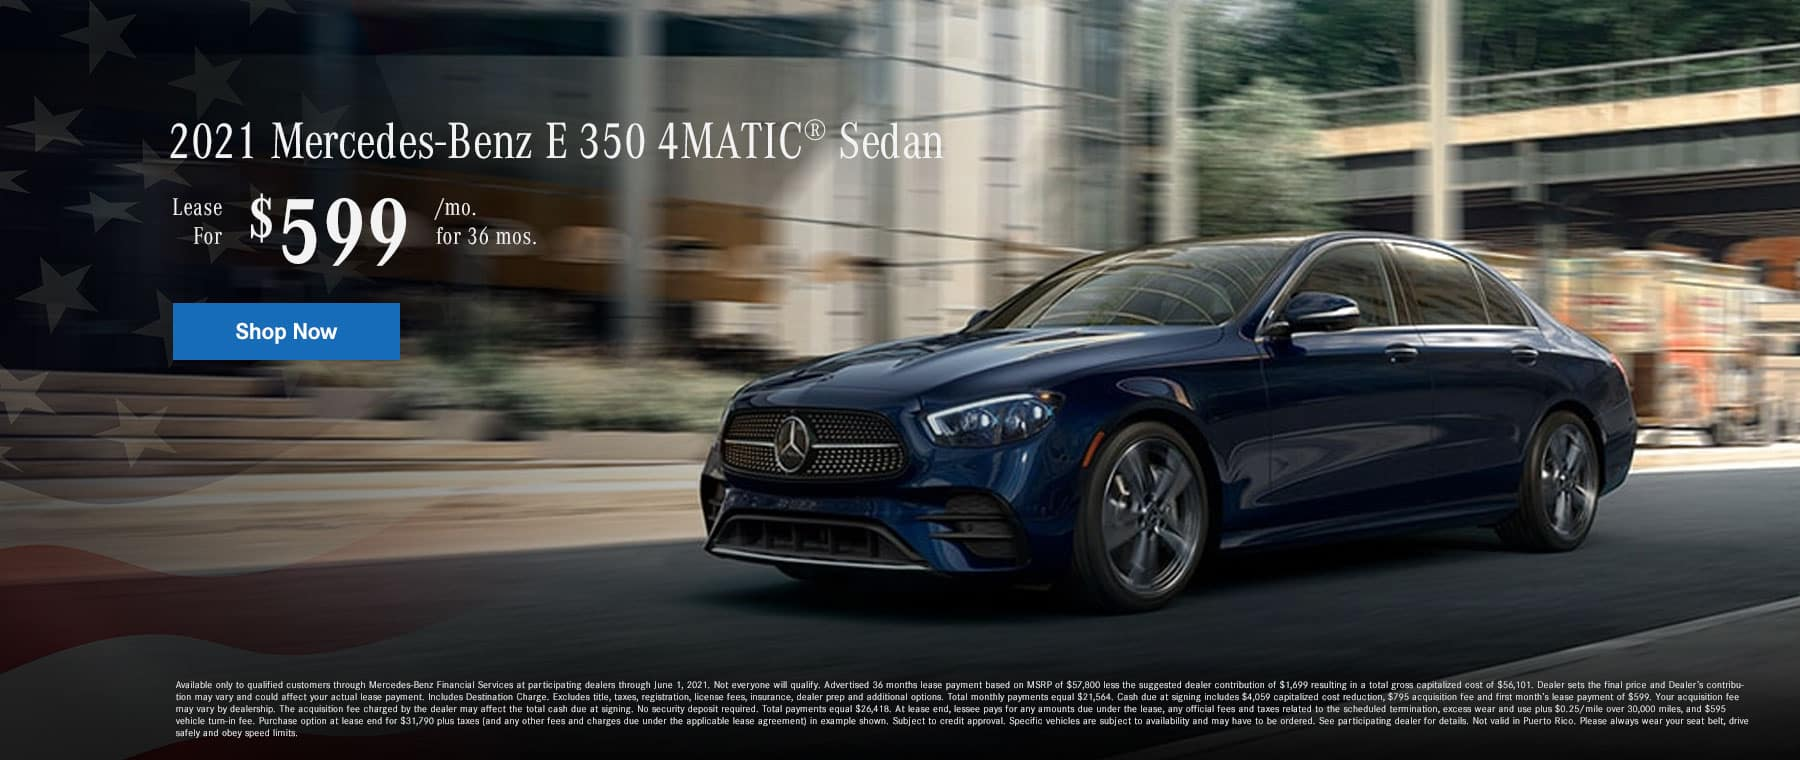 2021 Mercedes-Benz E 350 4MATIC® Sedan, Lease for $599 Per Month for 36 Months